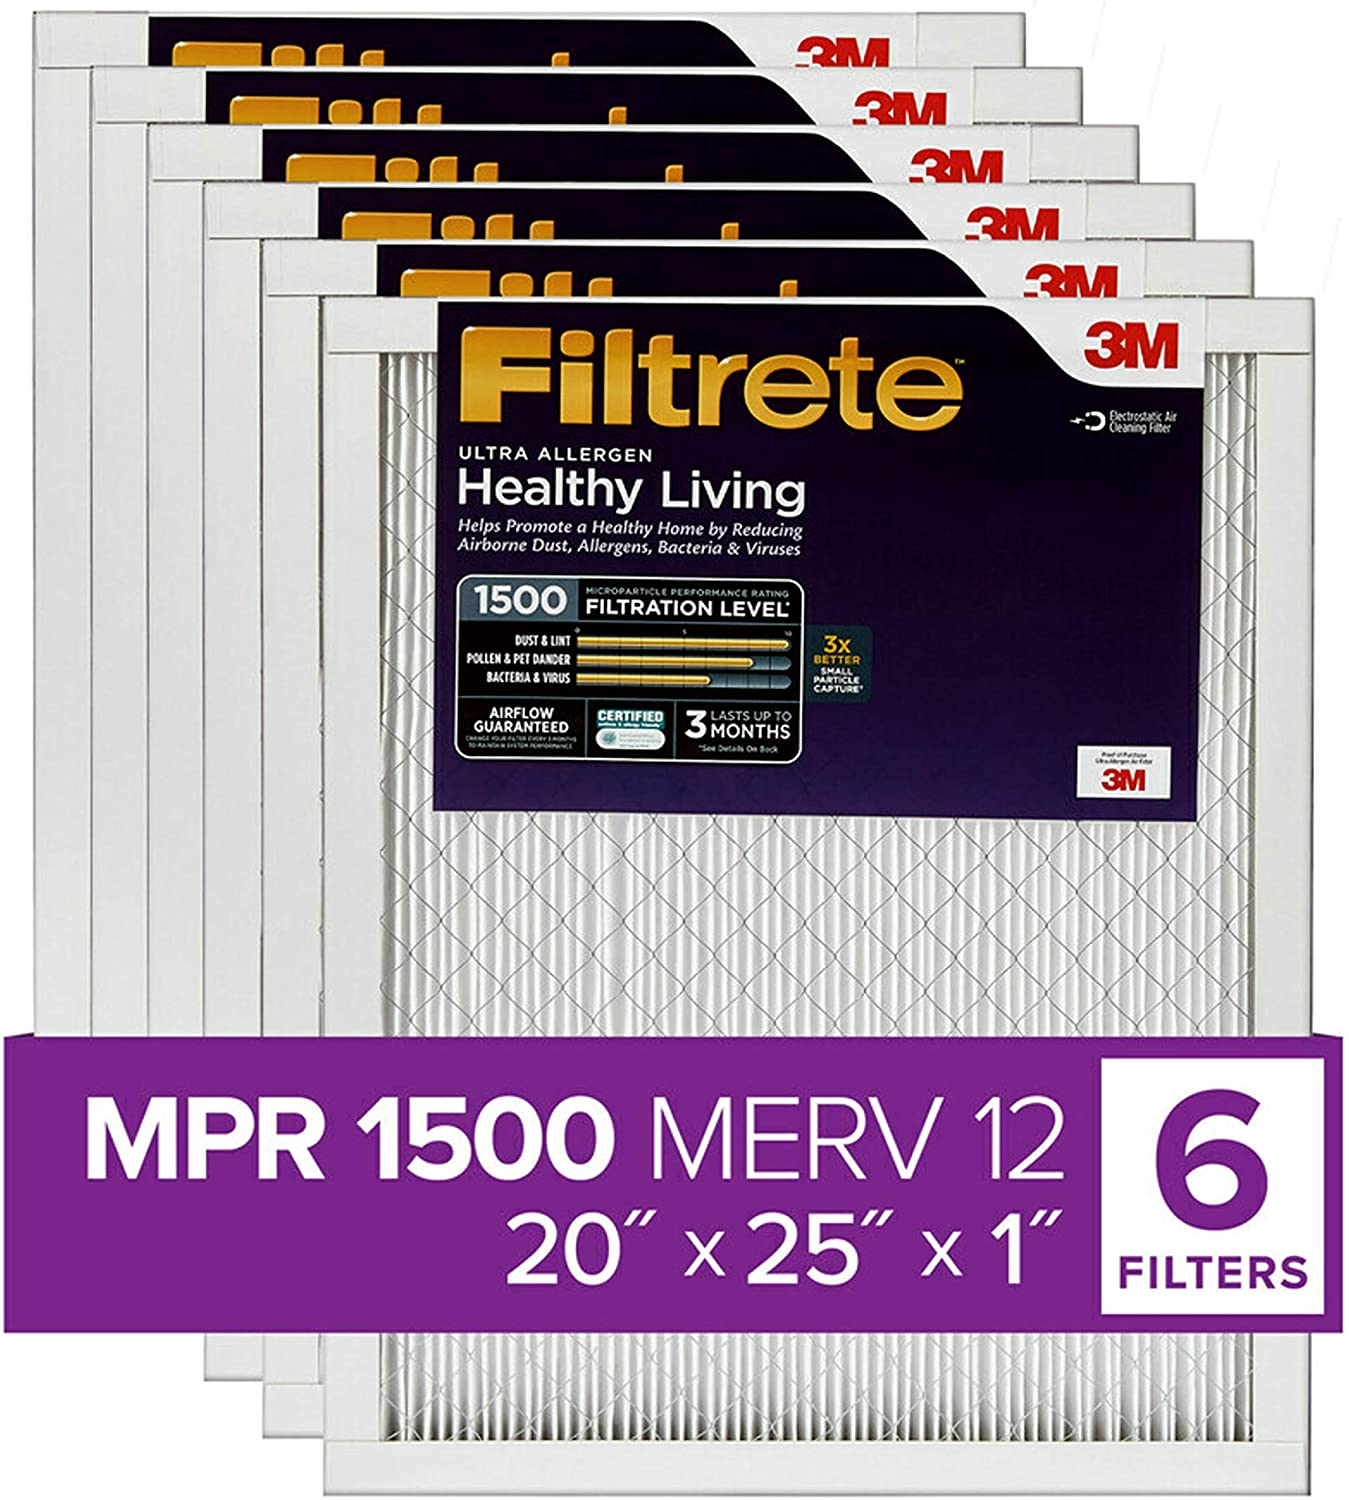 Filtrete 14x20x1 AC Furnace Air Filter MPR 1500 and Airthings Wave ...